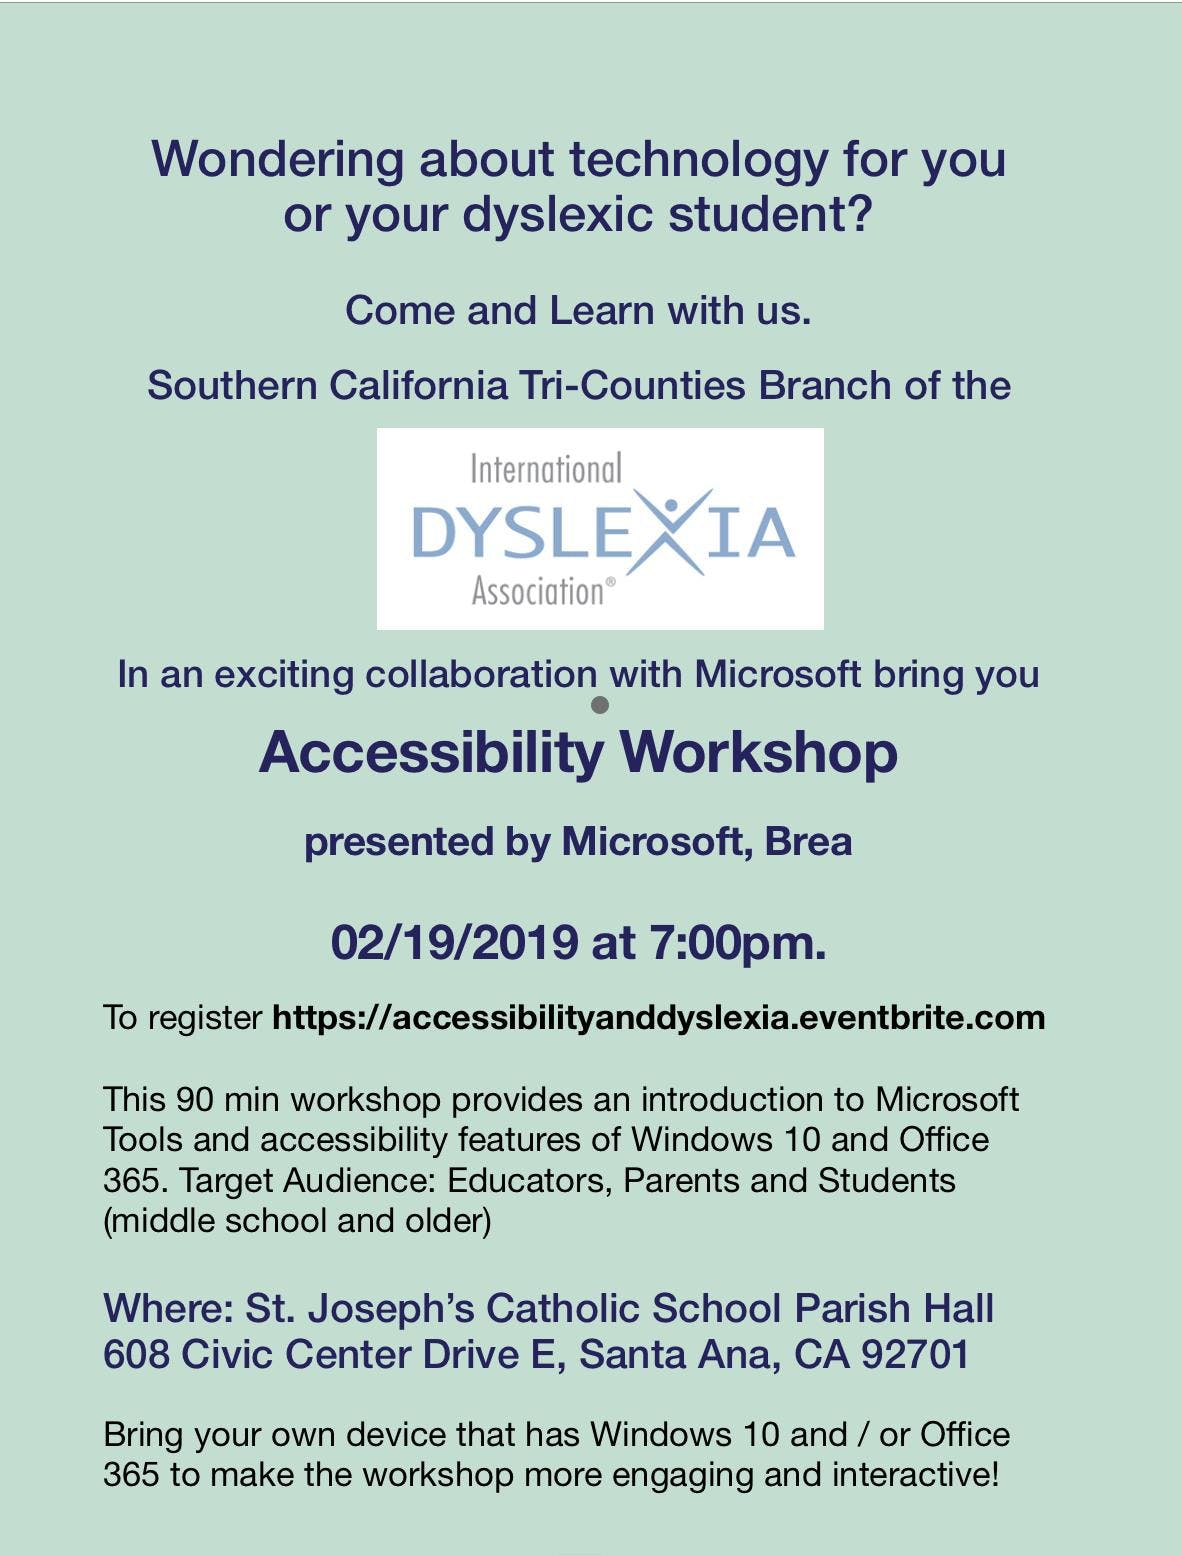 Empowering Dyslexic students through the use